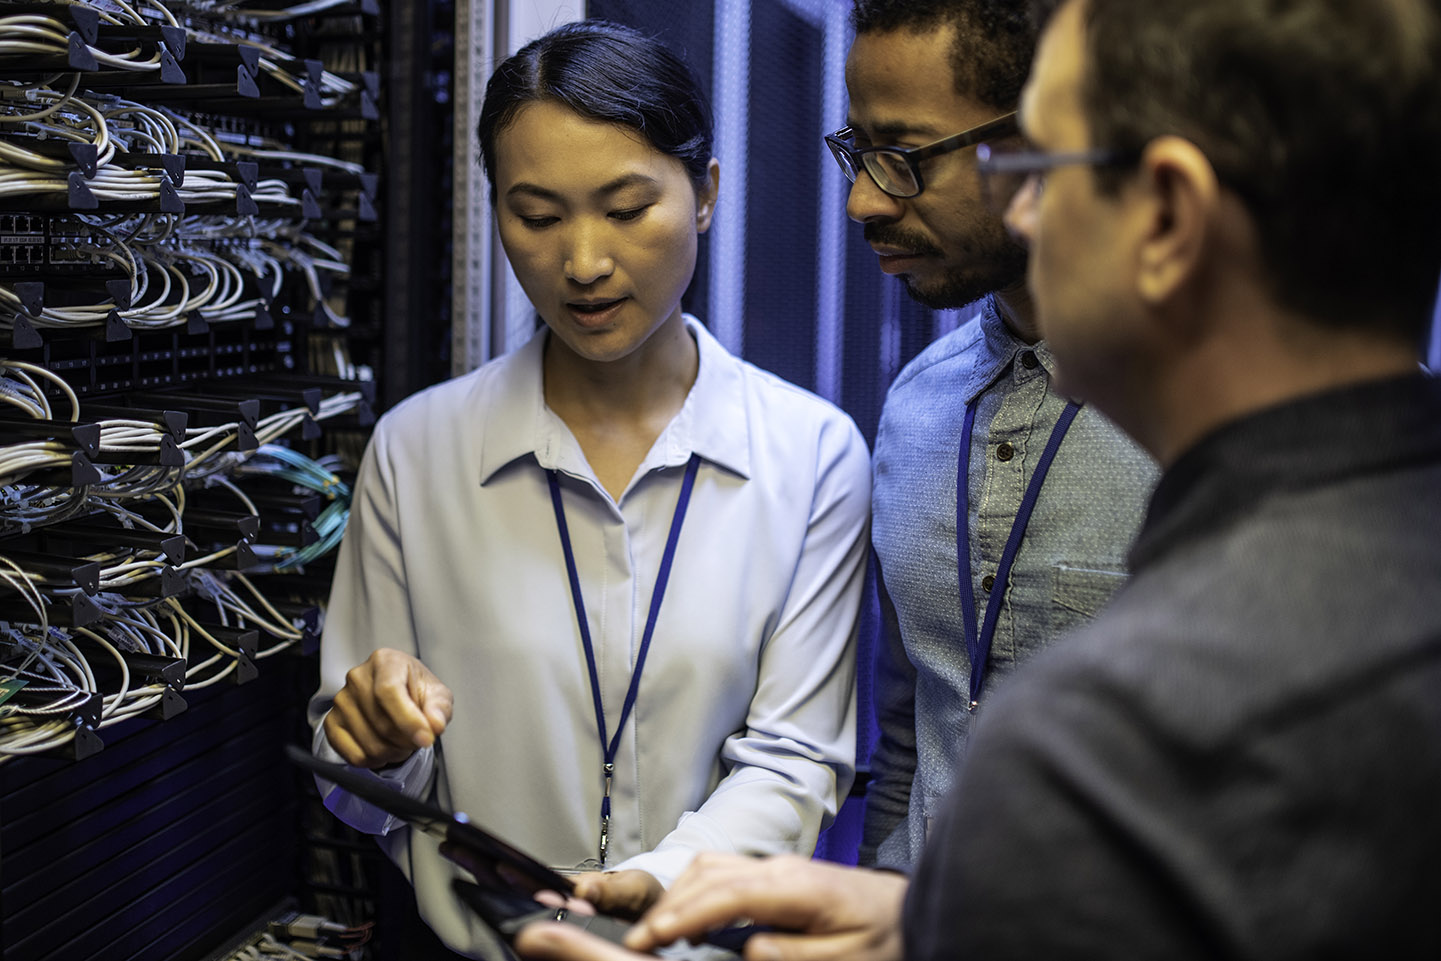 Three IT technician looking at a digital tablet and talking while standing next to a server in a data center.